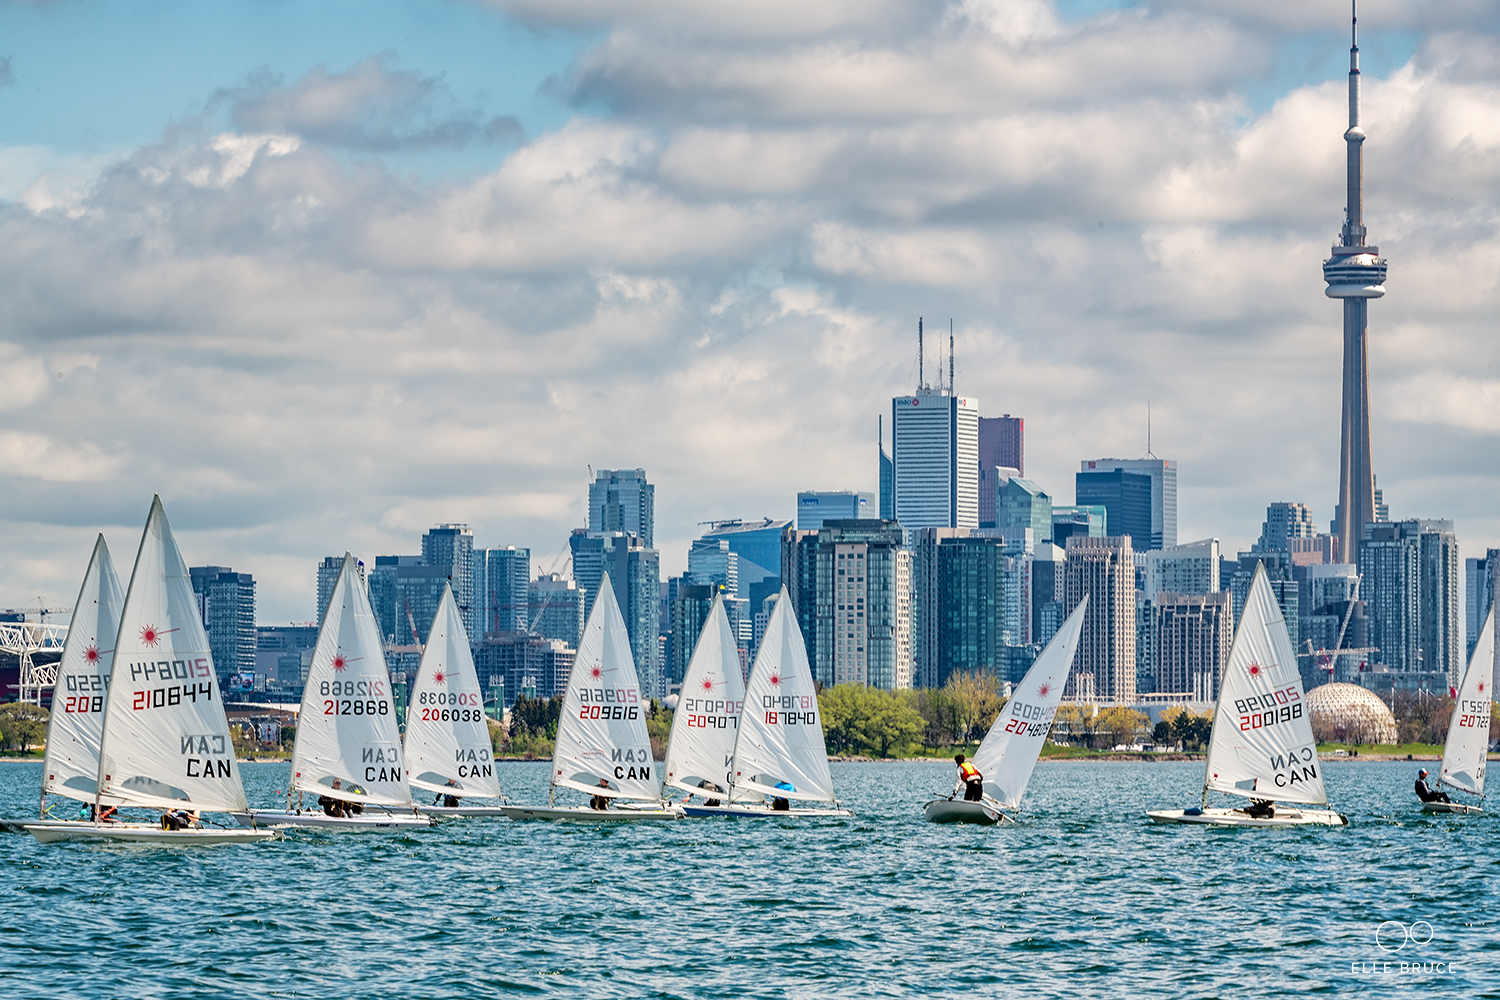 Liam Bruce - 2018 Ice Breaker Regatta at Toronto Sailing and Canoe Club in Toronto.  Sail number 206038.